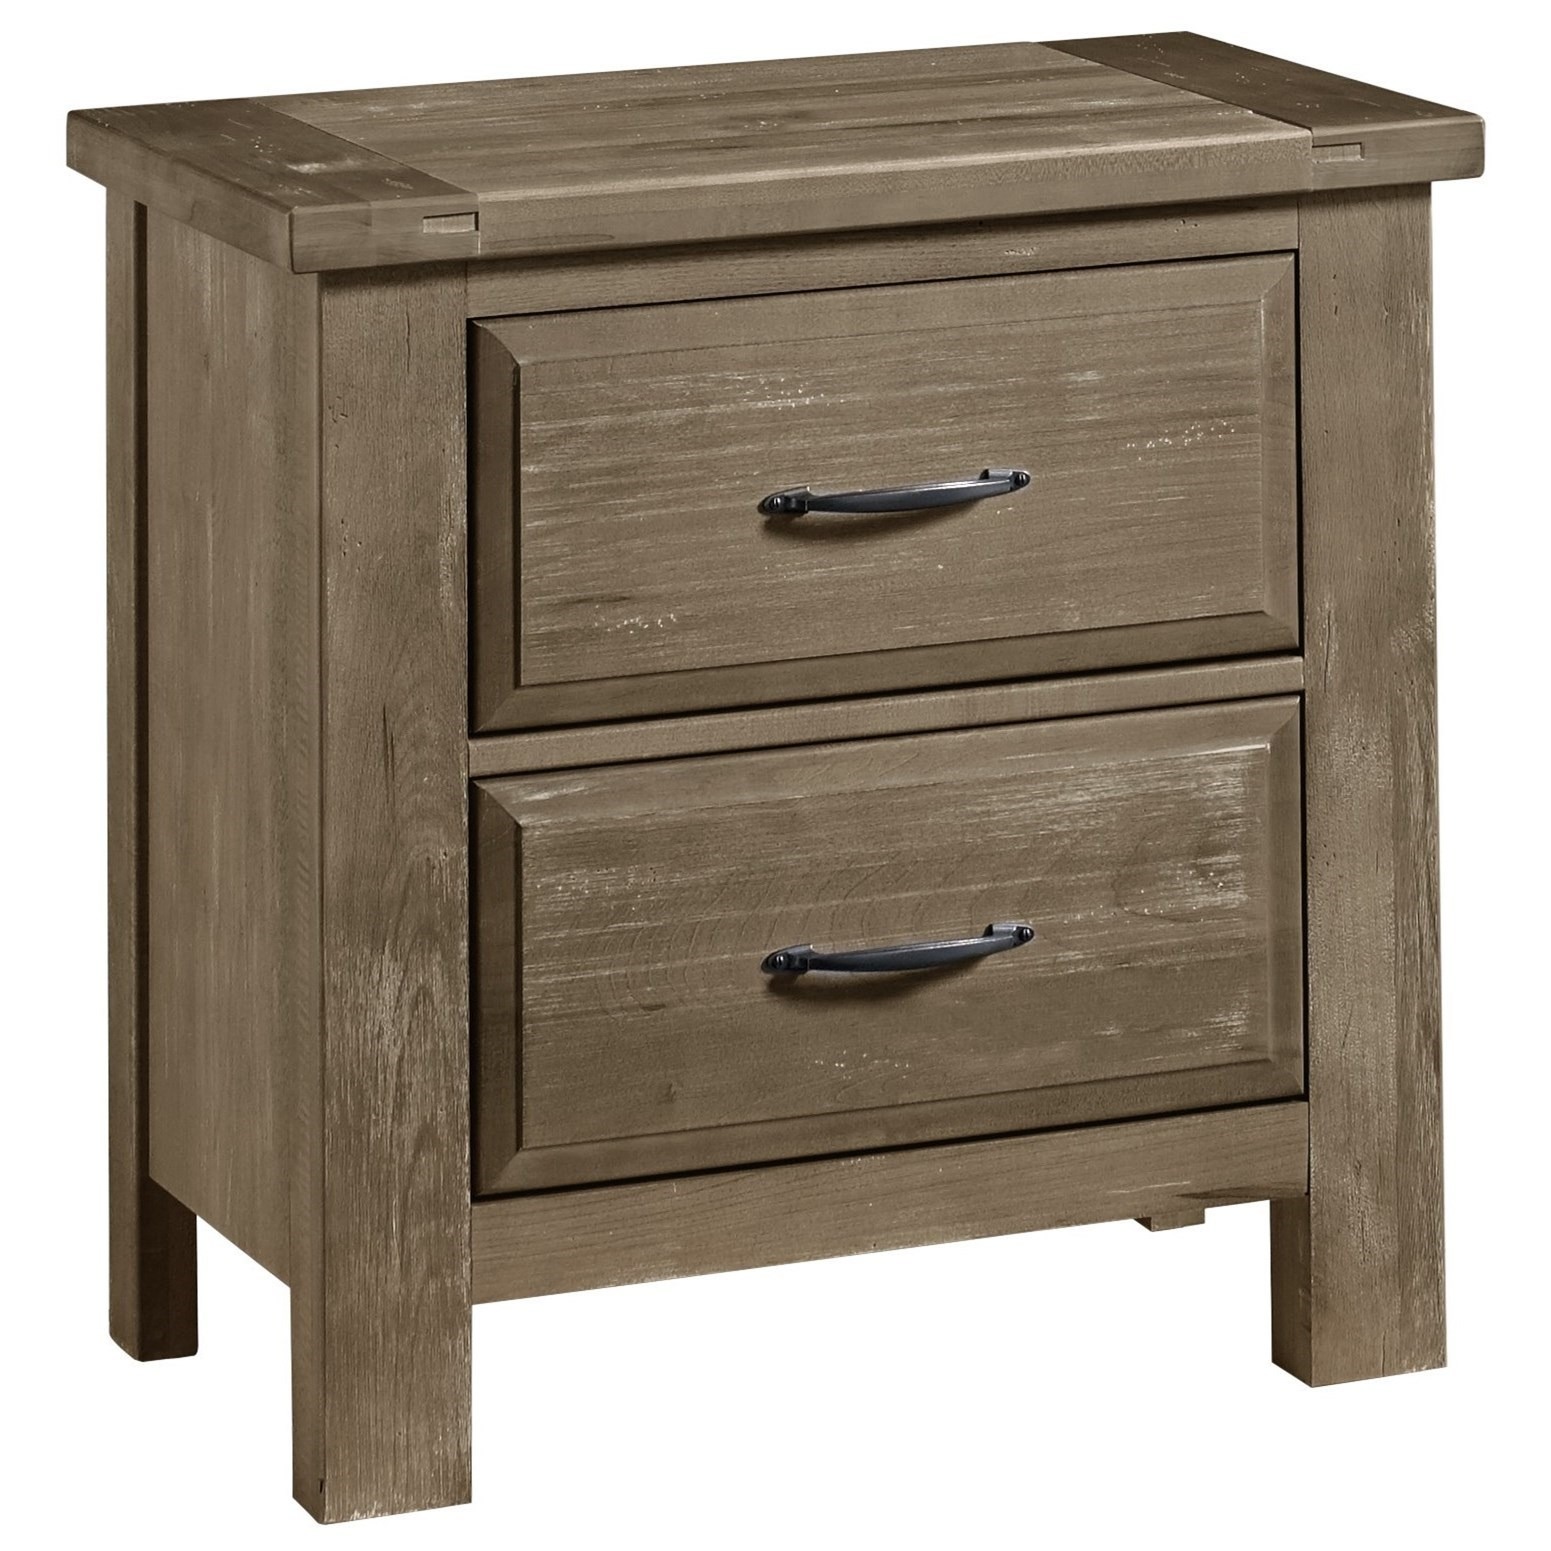 Artisan & Post Maple Road Night Stand - 2 Drawers - Item Number: 115-227